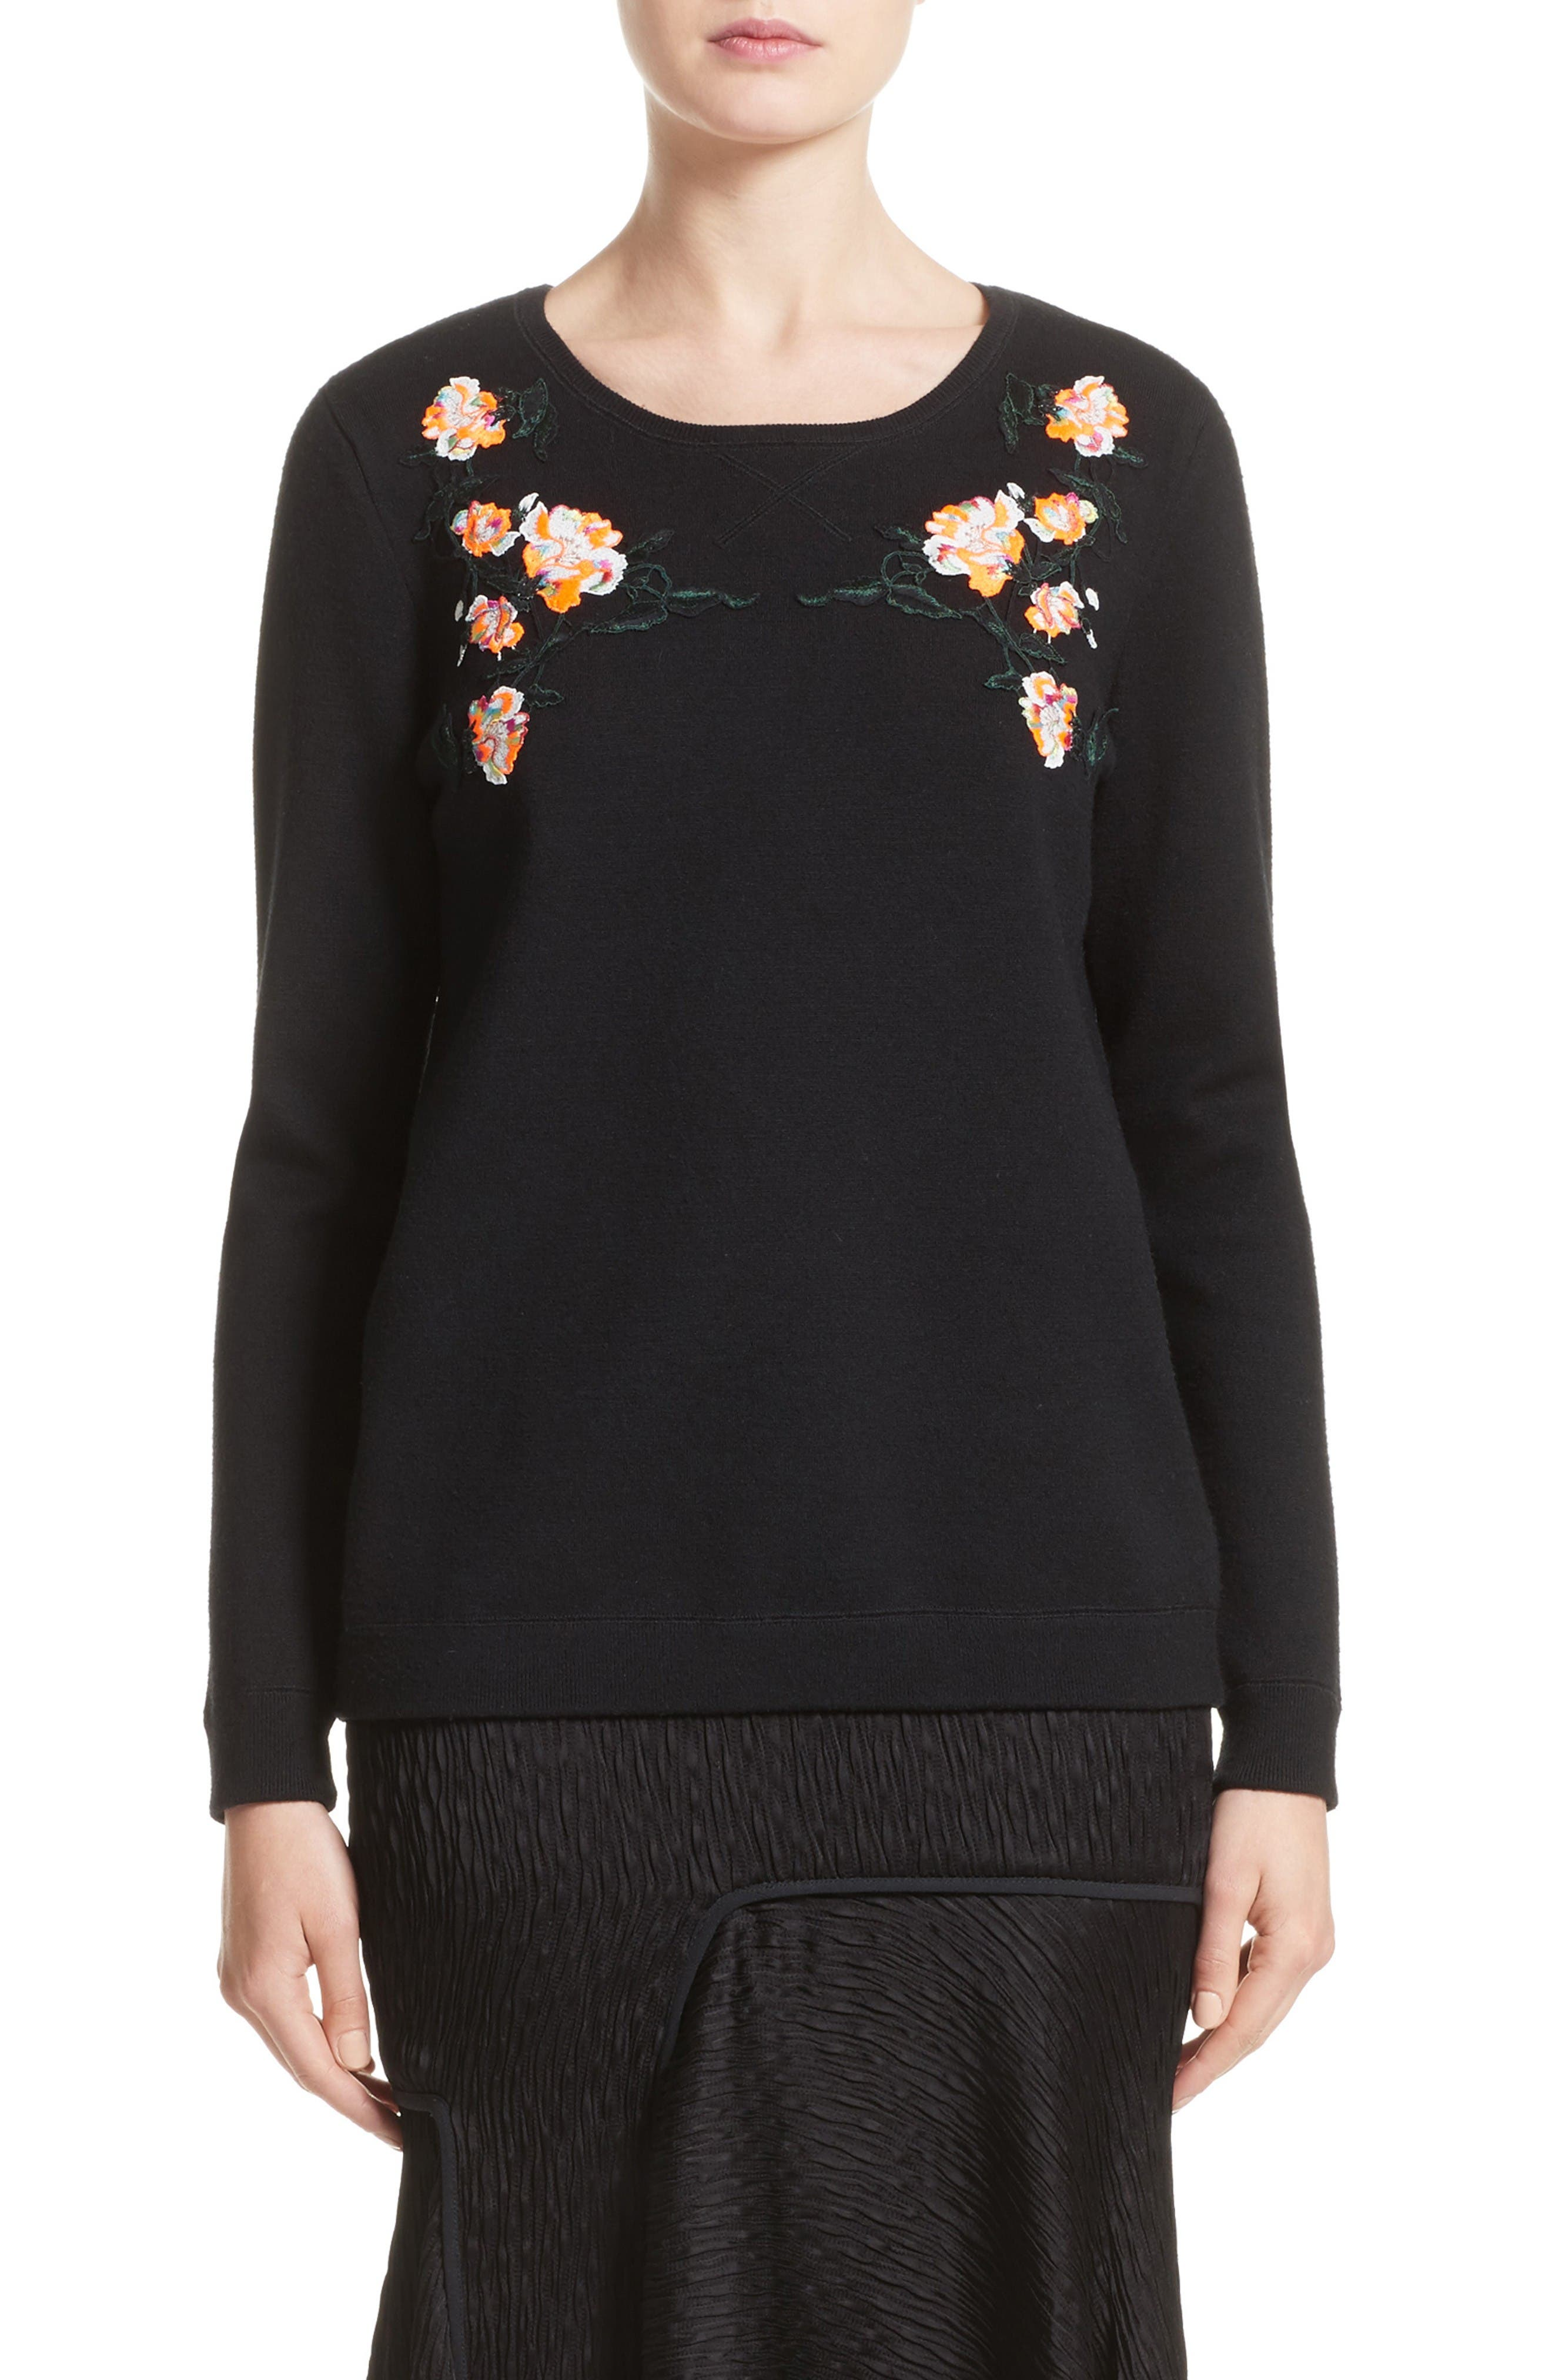 Jason Wu Floral Embroidered Merino Wool Blend Sweater